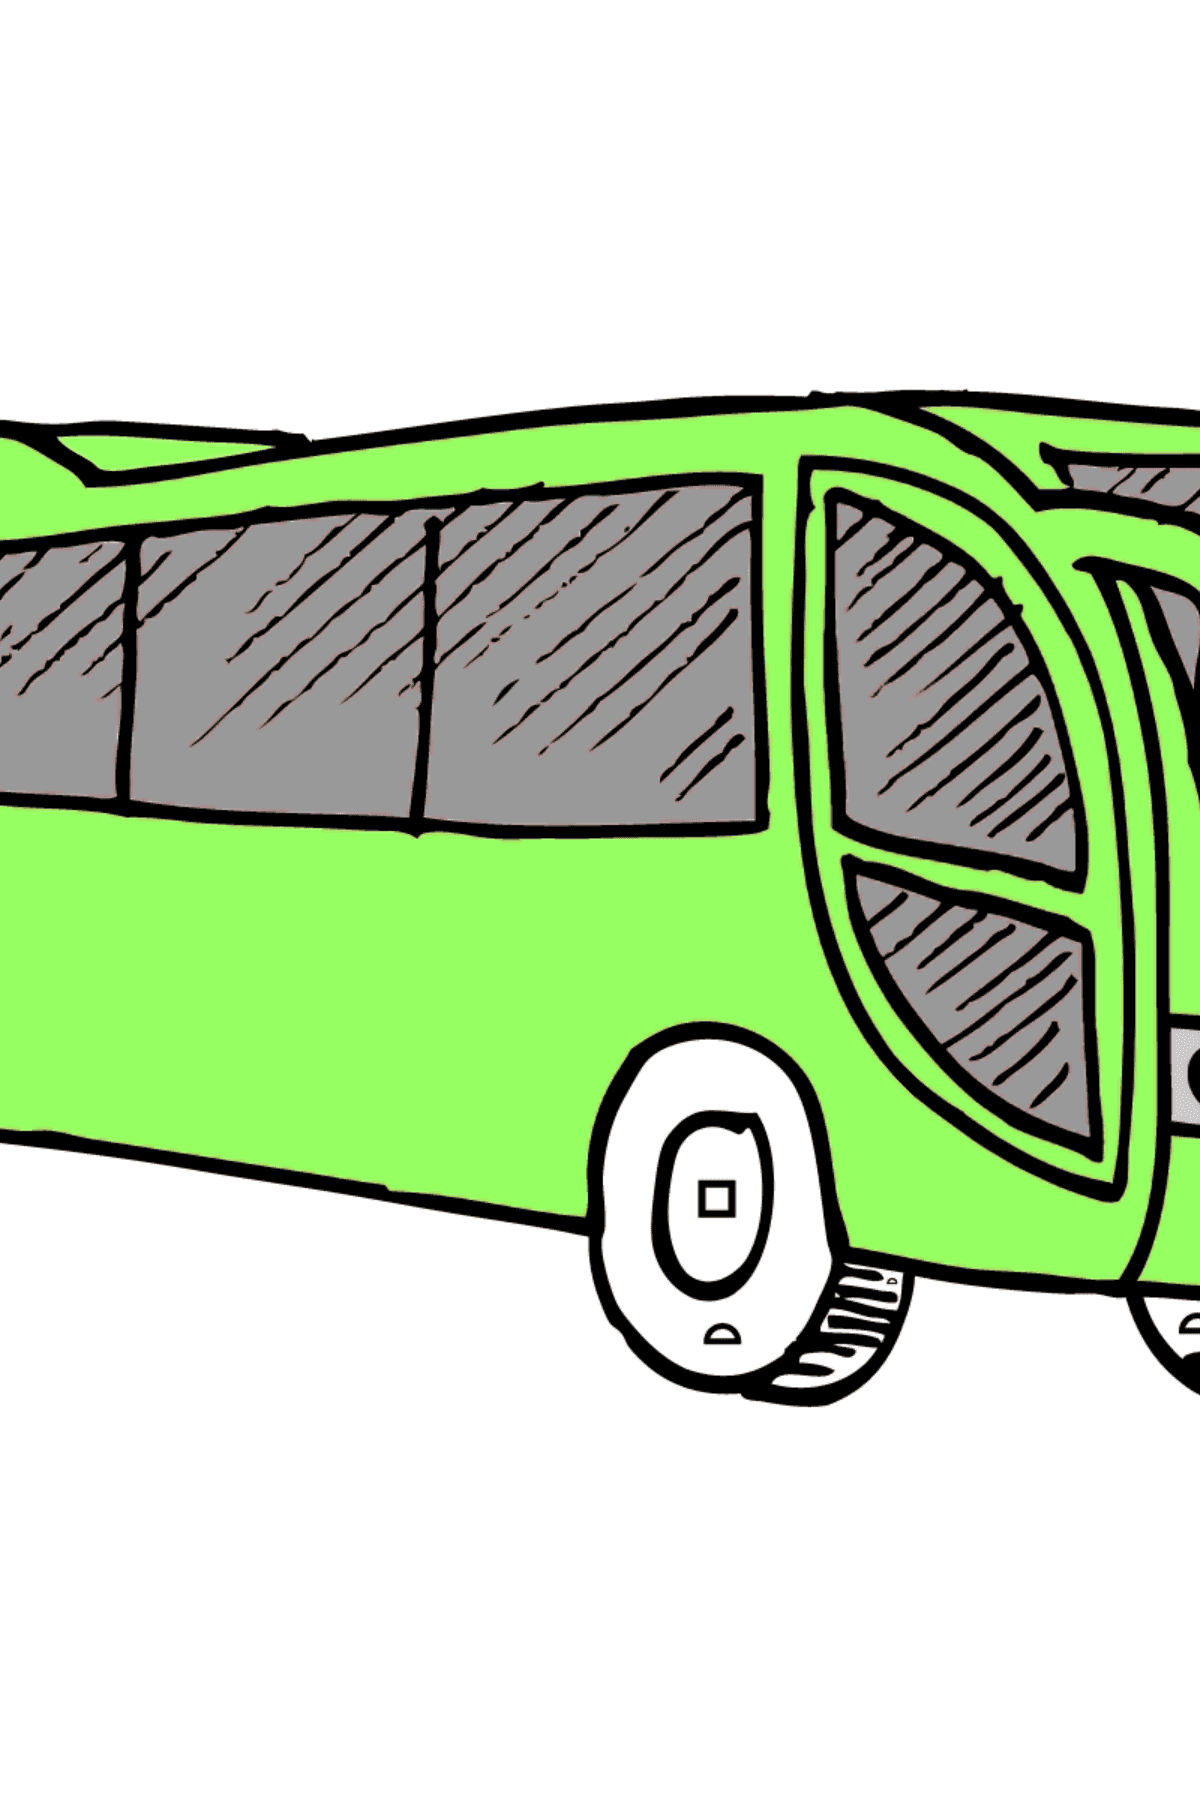 Coloring Page - A Bus is Having Rest - Coloring by Geometric Shapes for Children